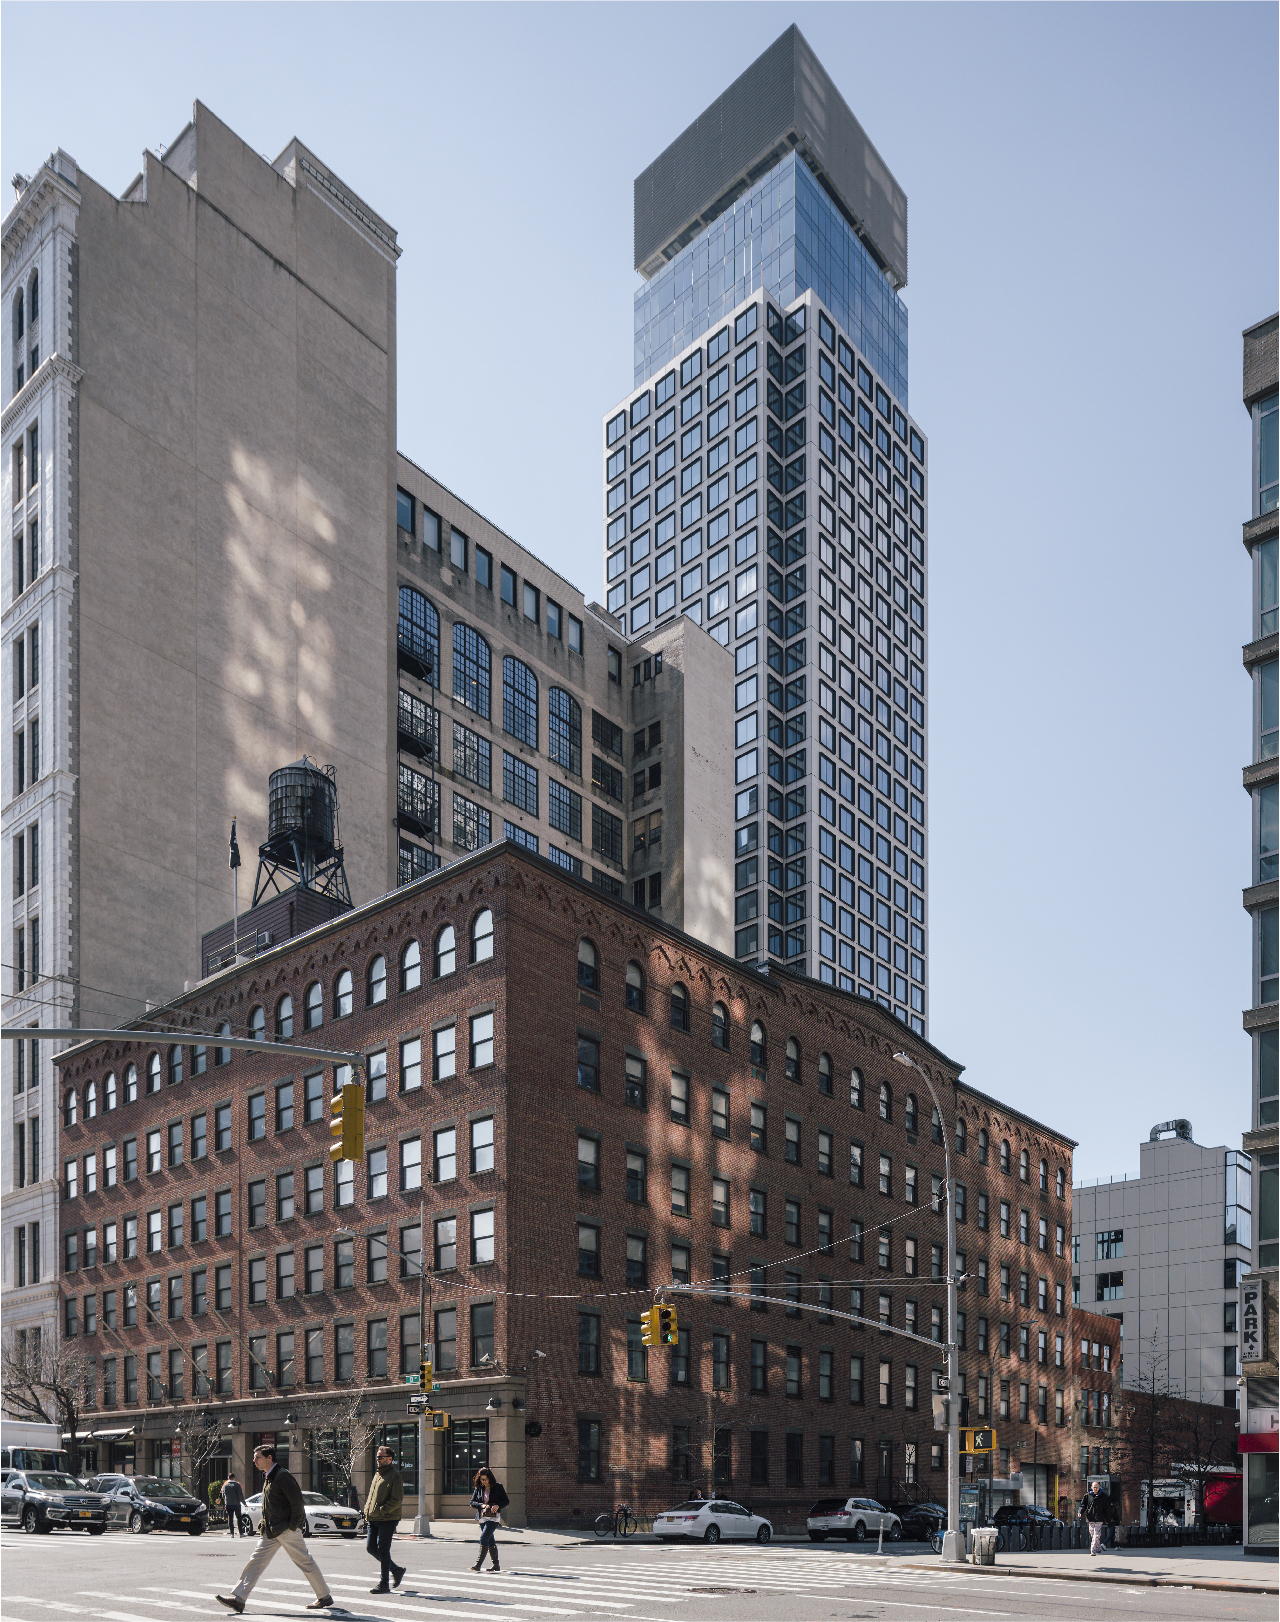 West 36 Street High rise with porcelain cladding accents